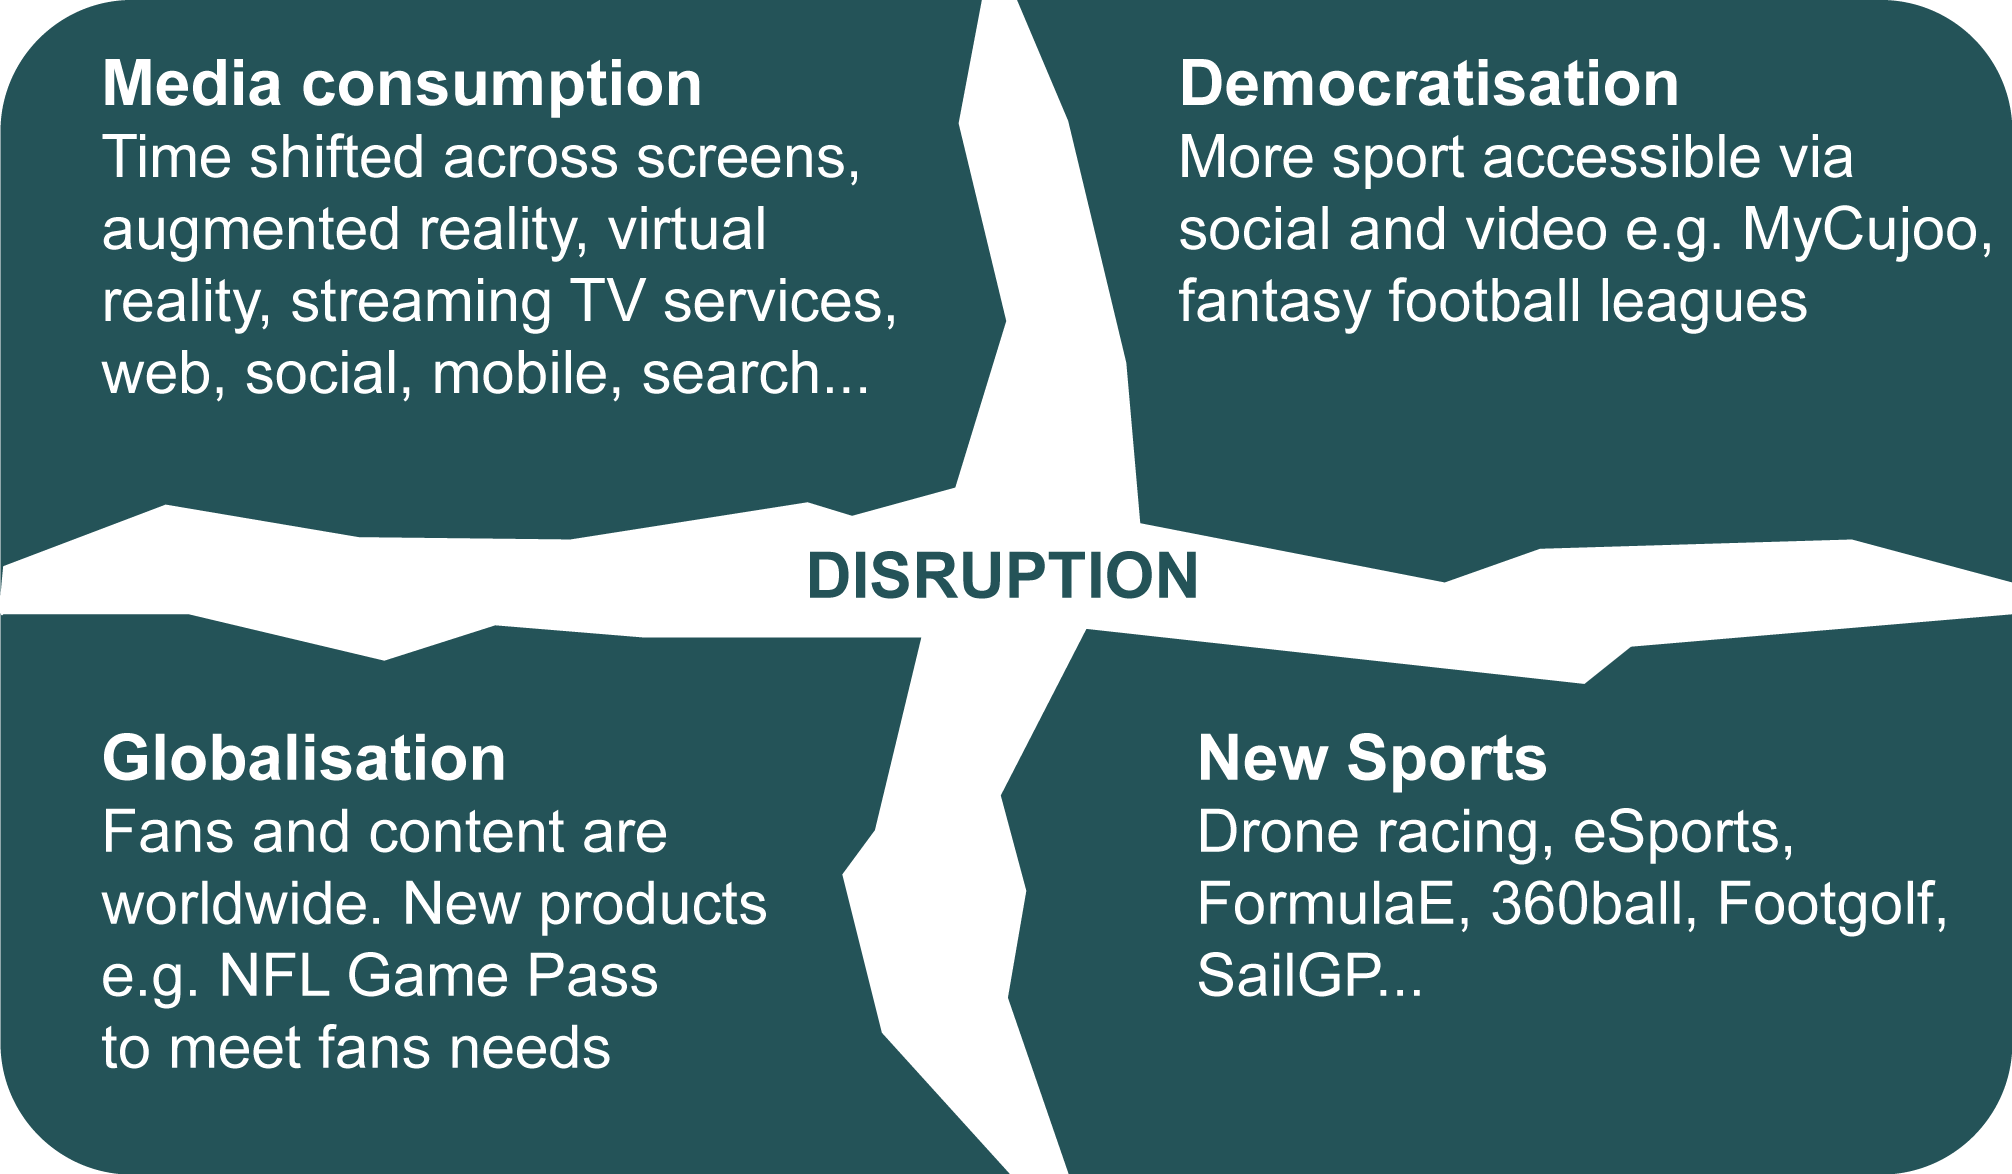 Disruption in the sporting world